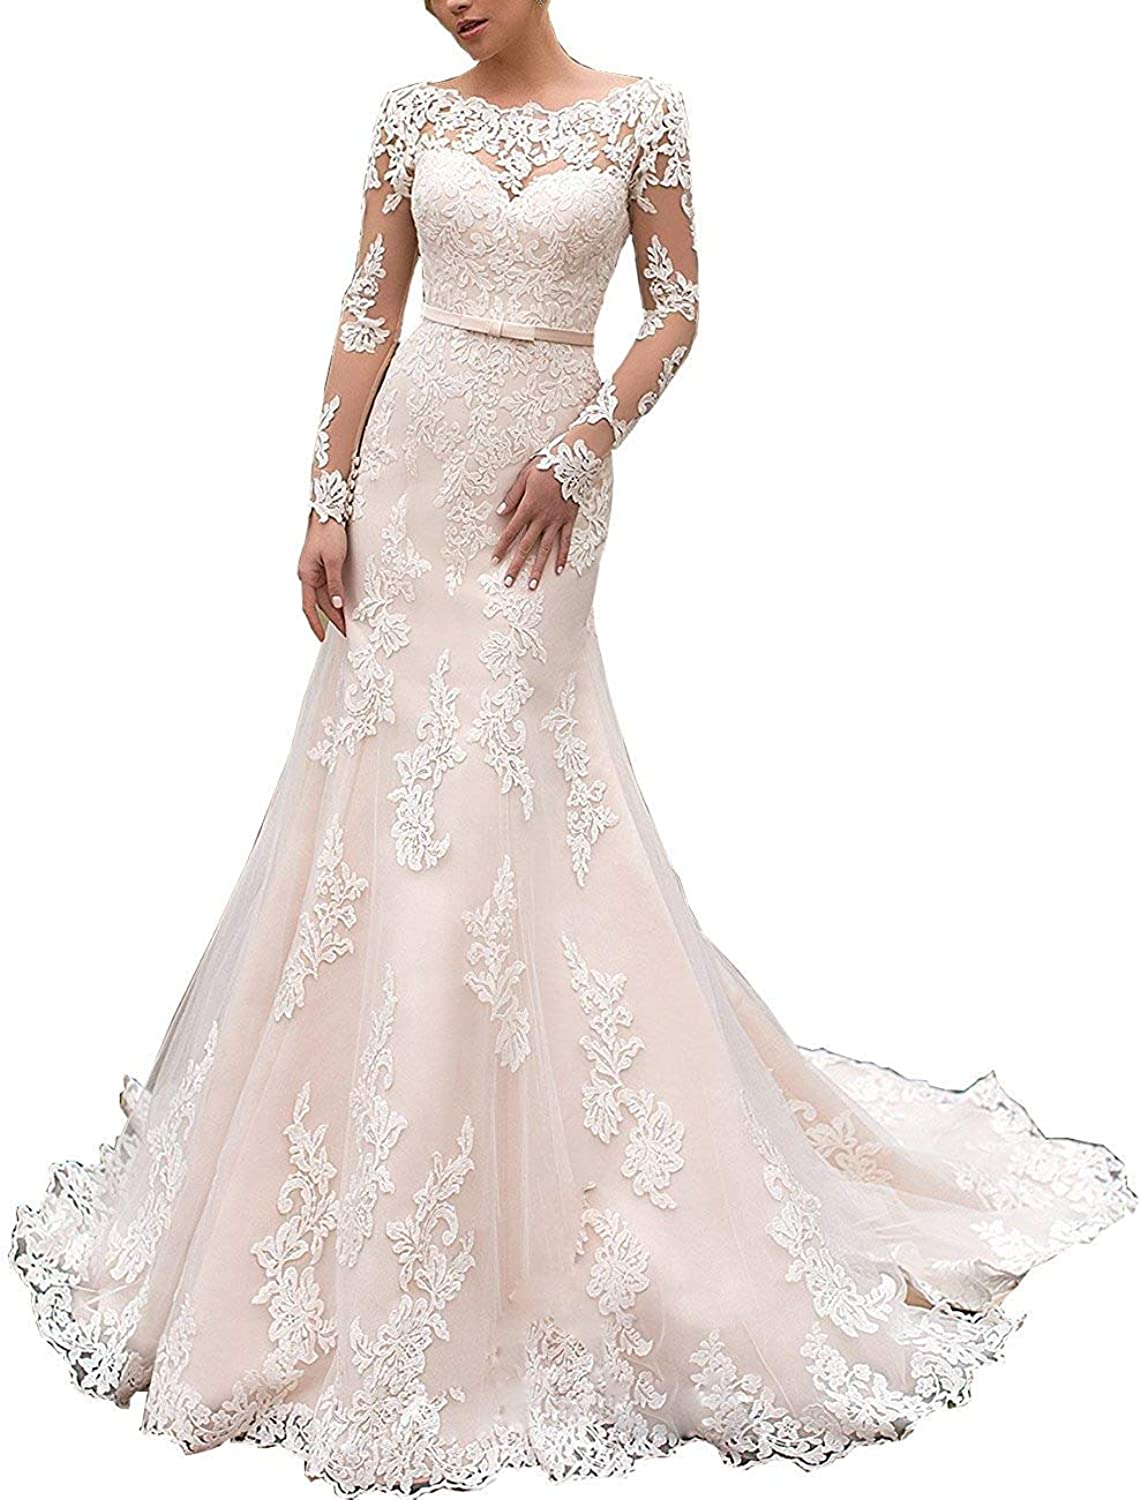 Alexzendra Mermaid Wedding Dress for Bride Scoop Neck Long Sleeves Bride Dress Plus Size